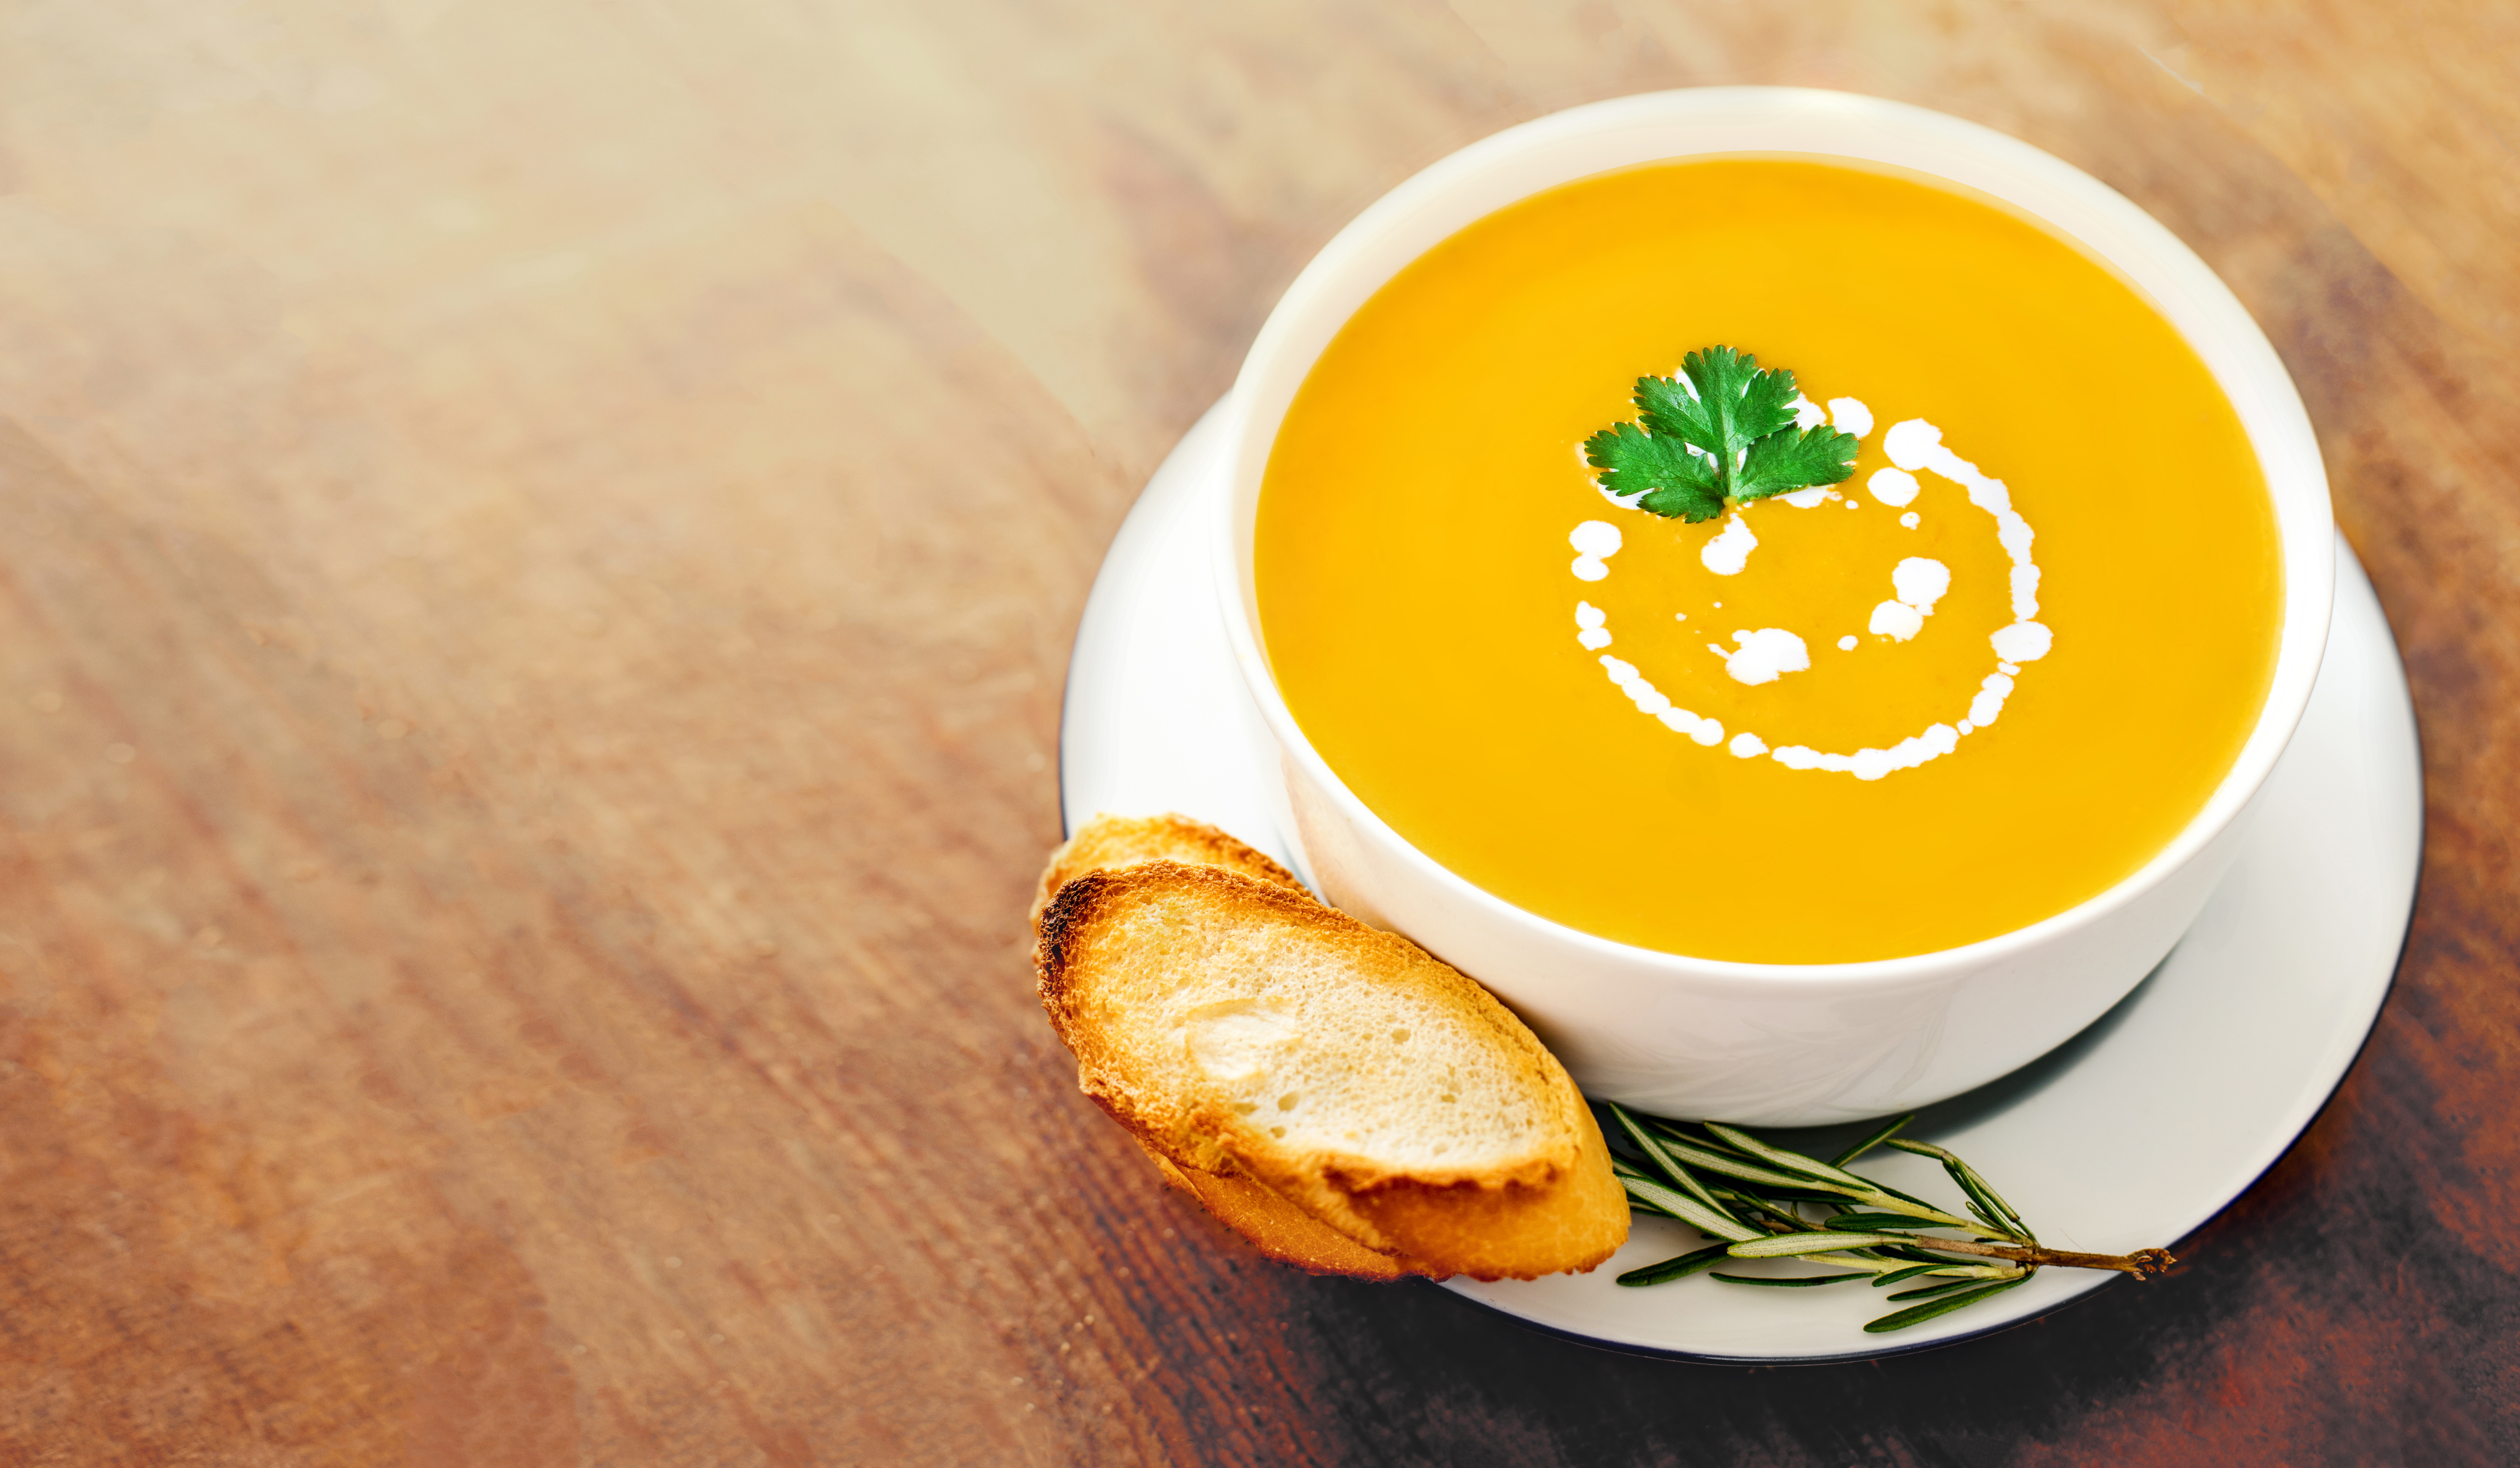 bigstock-Pumpkin-And-Carrot-Soup-In-A-W-243748294